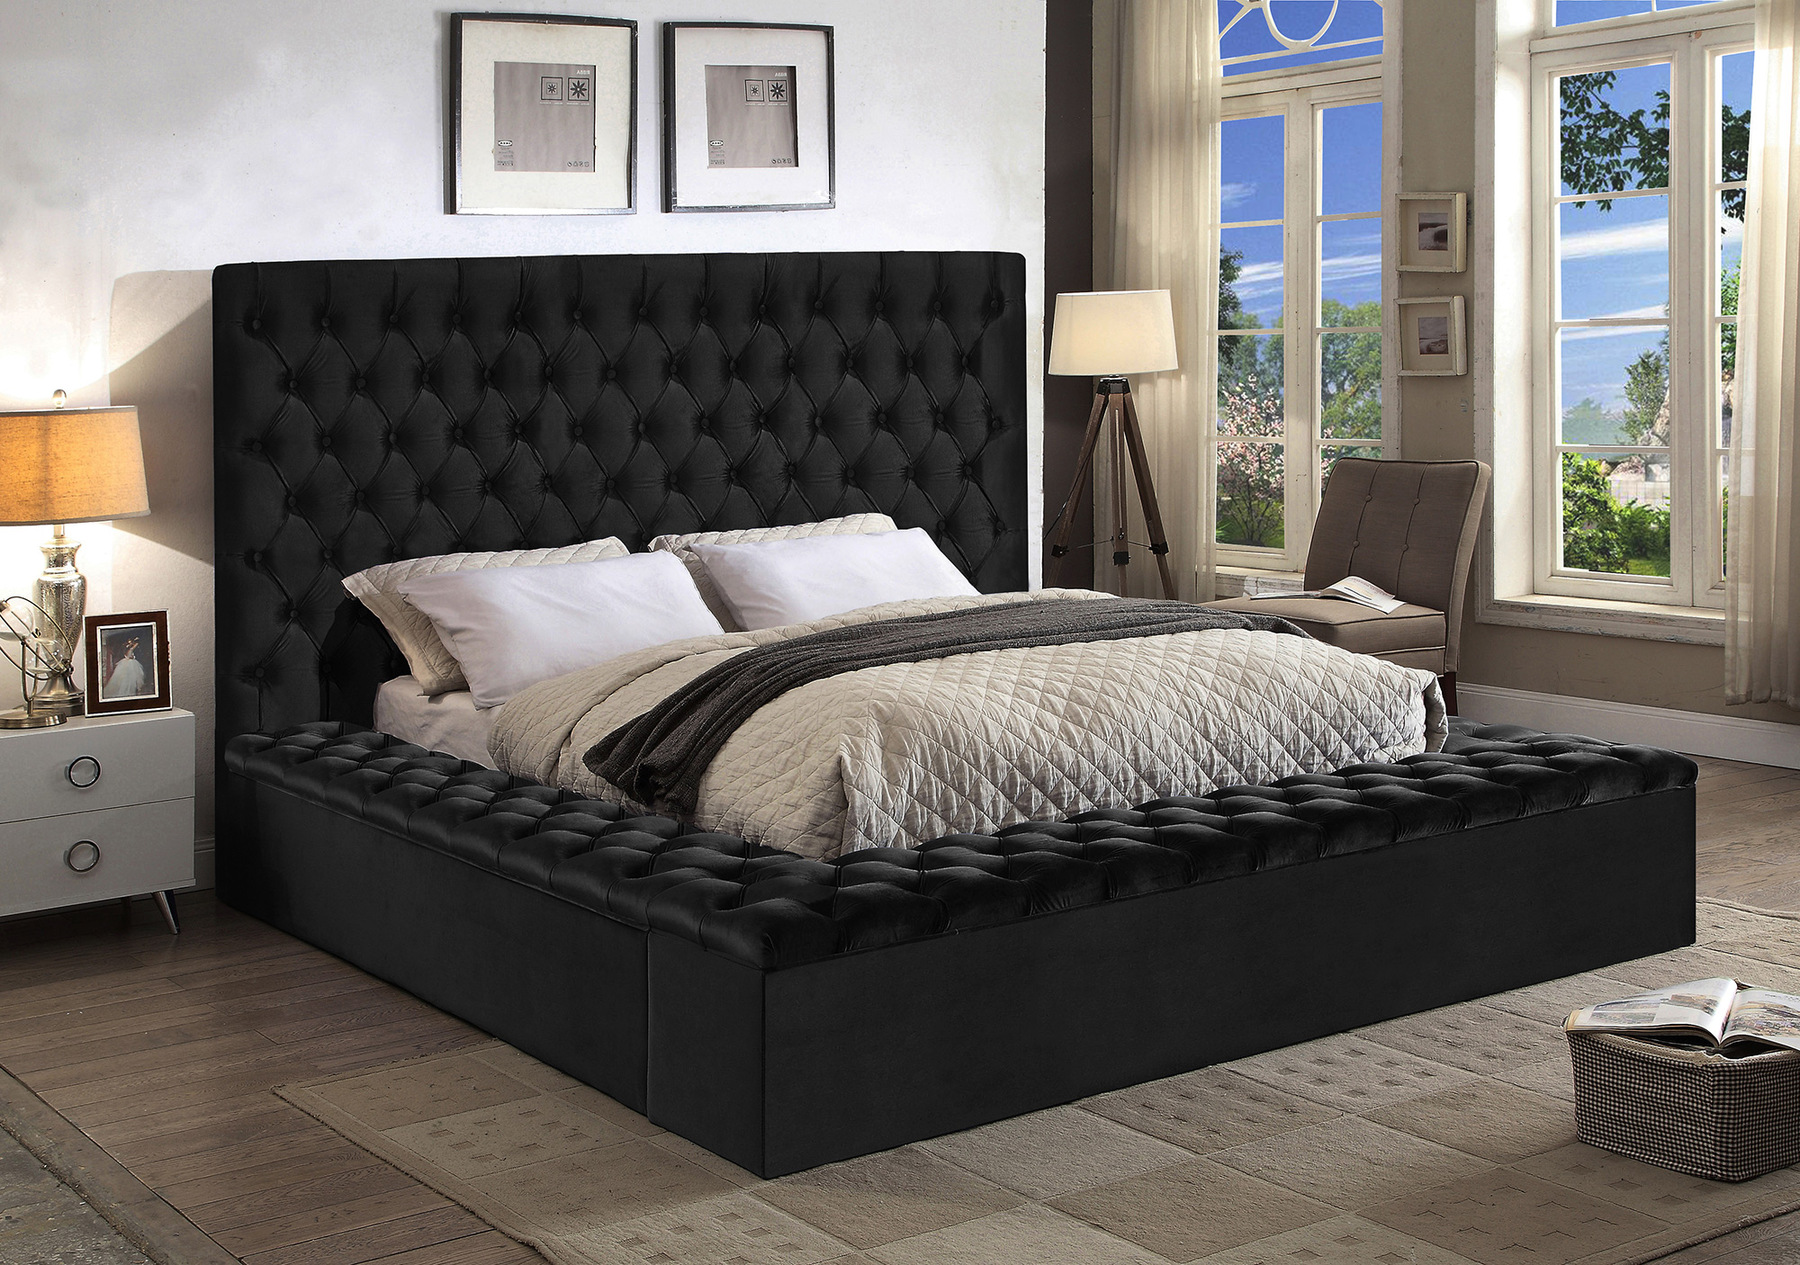 king size bed exciting black king bed frame gallery fresh on home security minimalist SRHLJDF